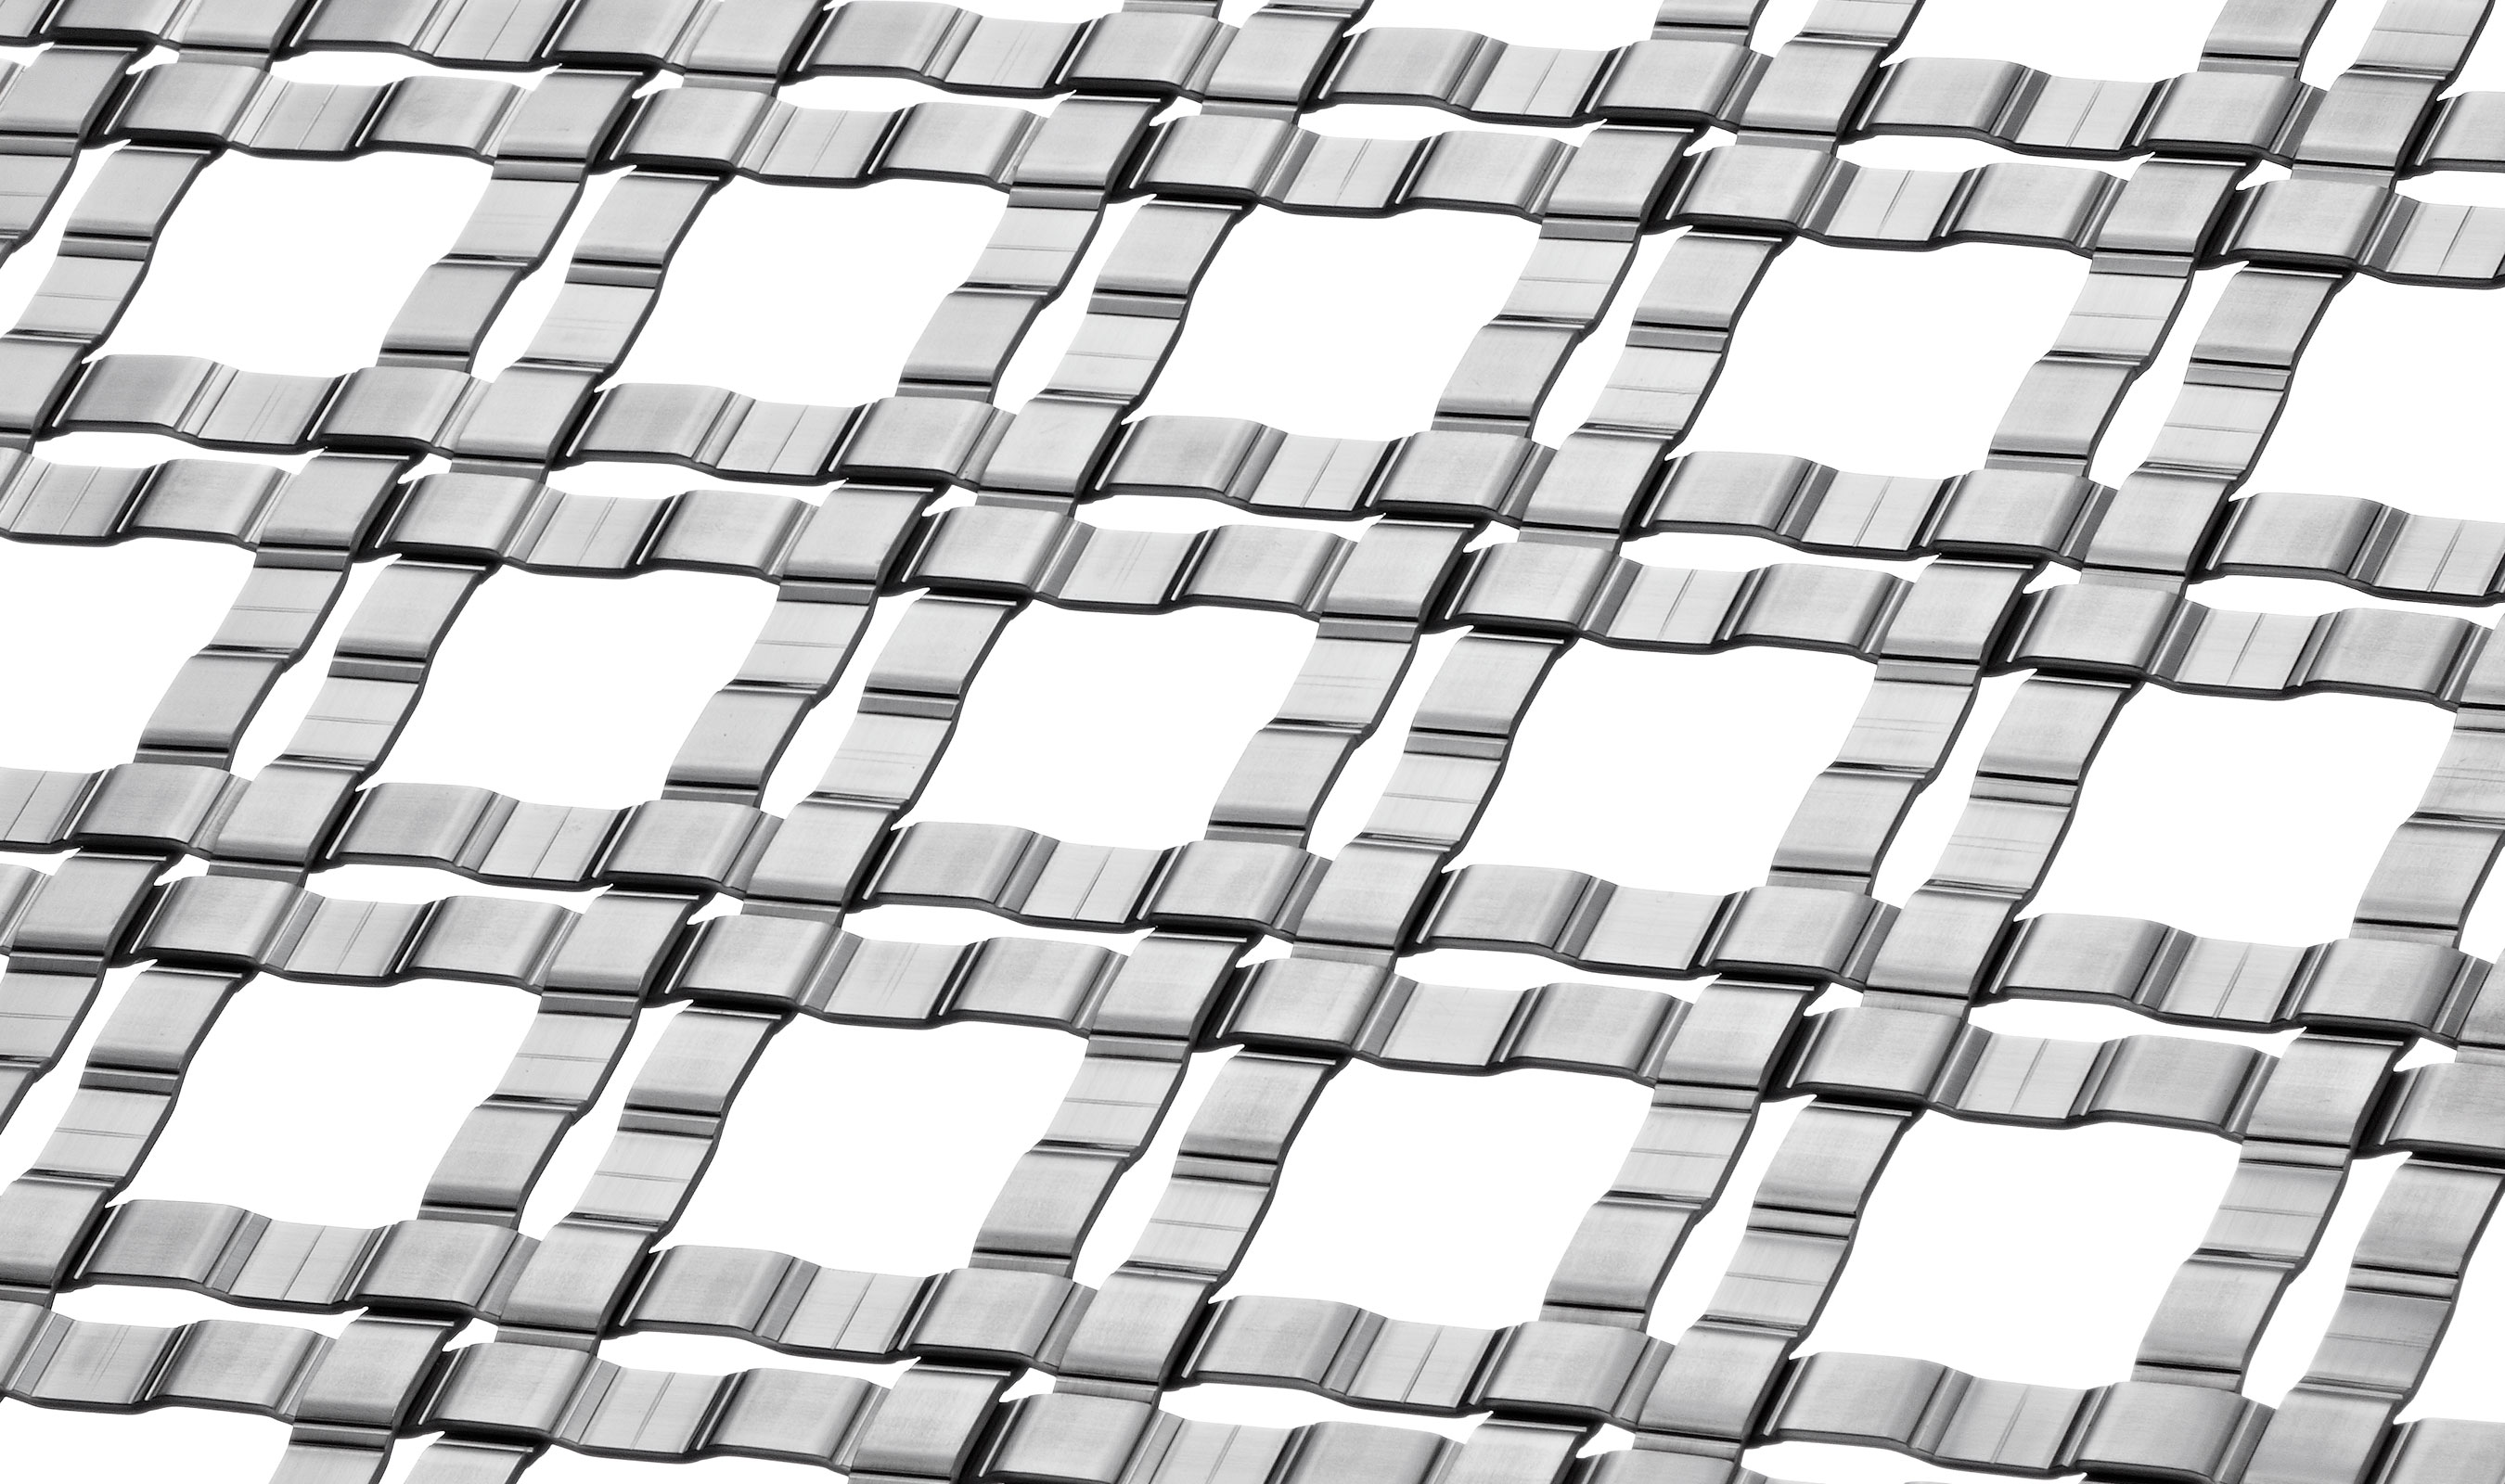 M22-38 Angle in Stainless Woven Wire Mesh